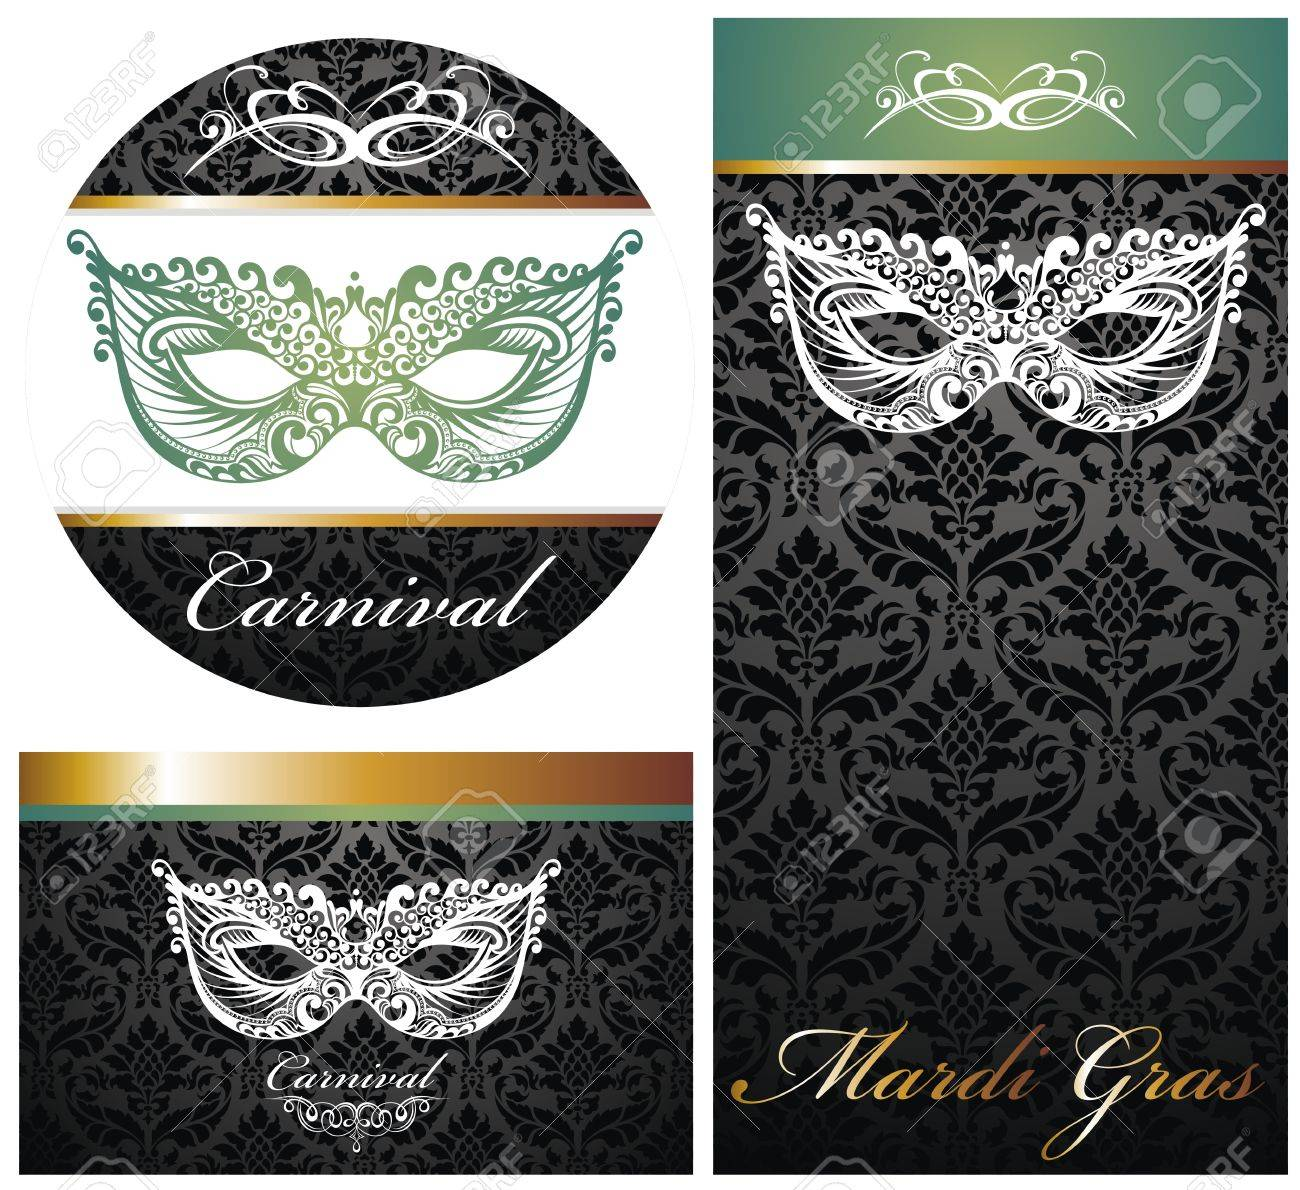 Masquerade Ball Party Invitation Posters Stock Vector